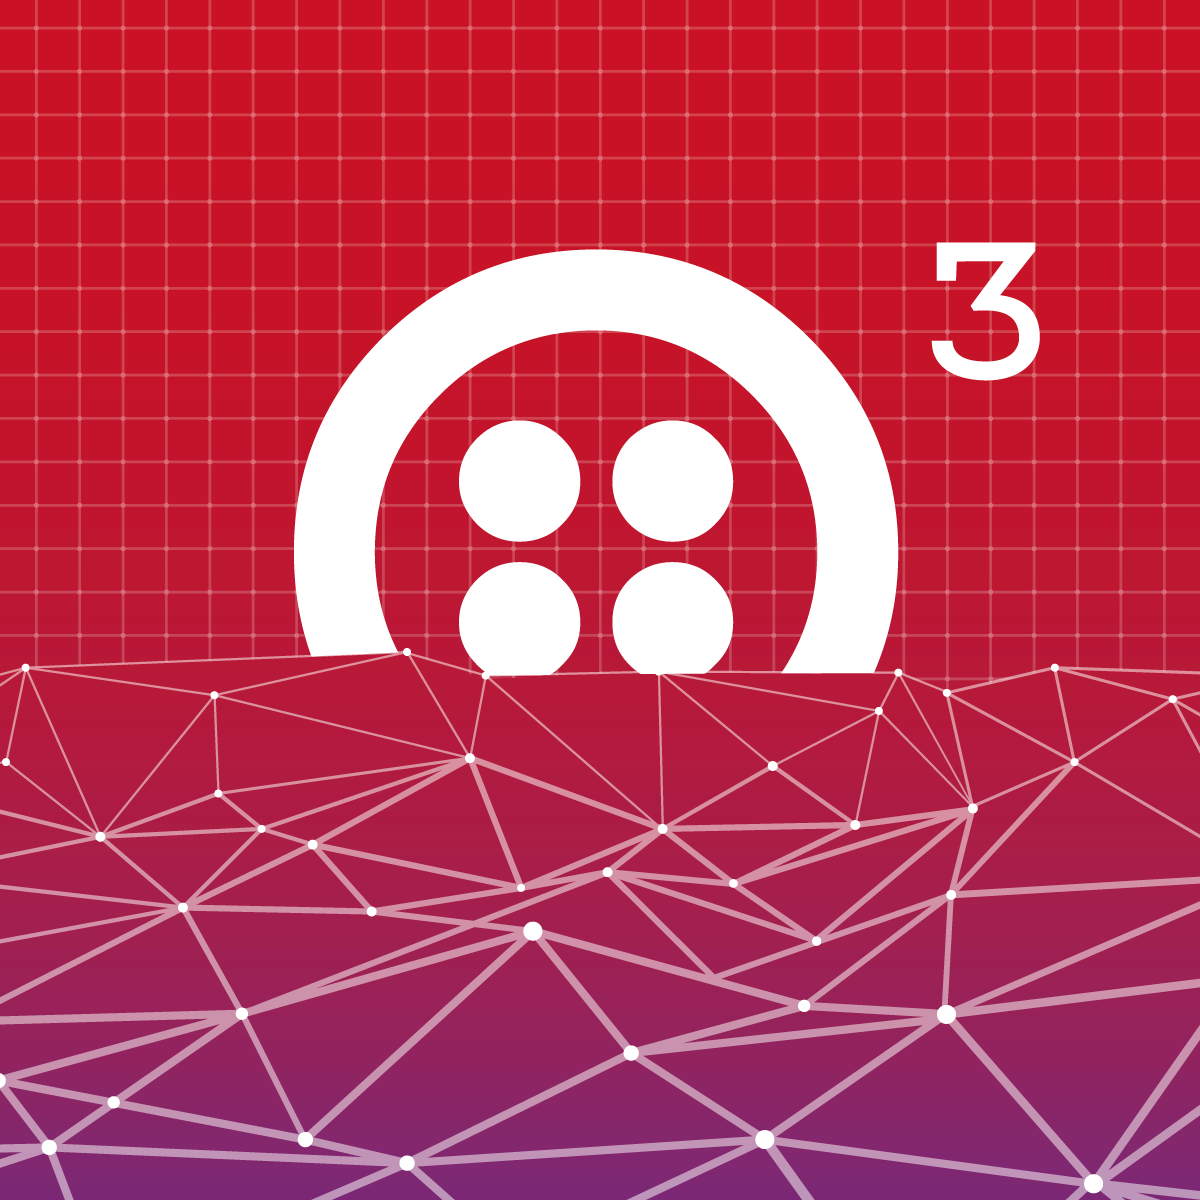 TwilioCon 2013